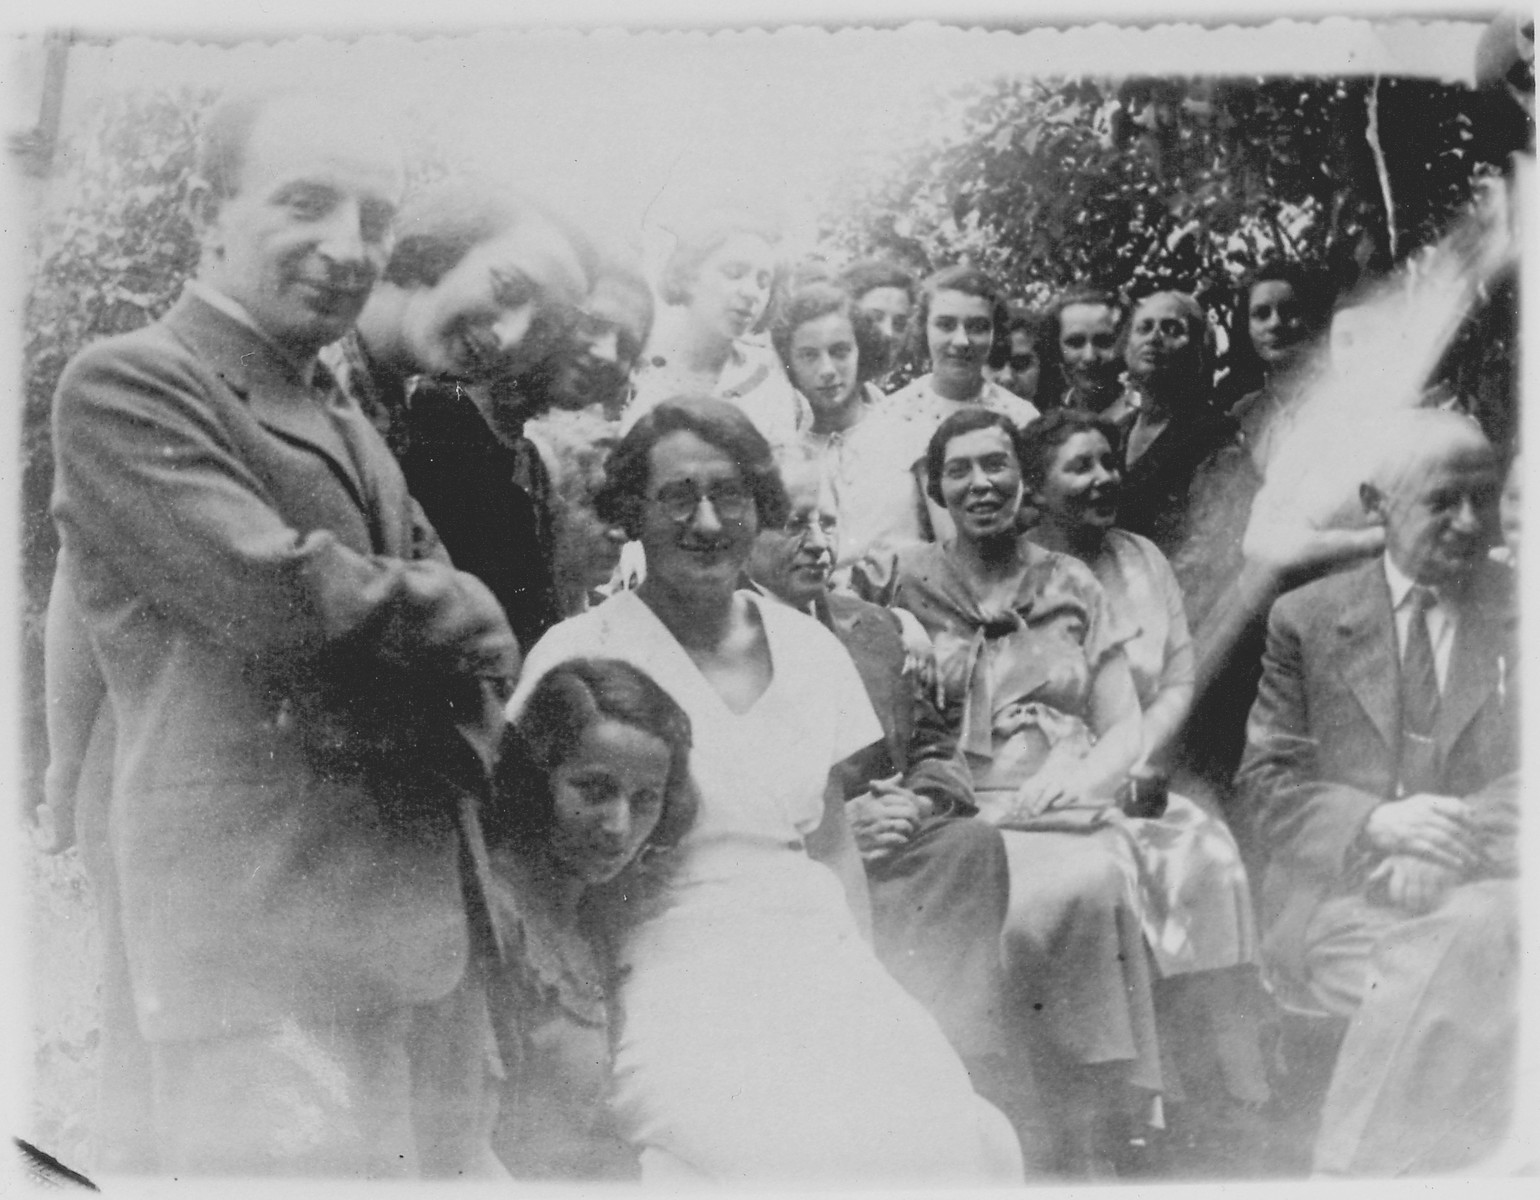 Teachers and students at Zofja Kalecka Gimazjum, a private Jewish girls high school in Warsaw.  The teachers in the photo are Falik Hafner (Jewish history), Maya Halbersztat (physics), Tadeusz Klimowicz (principal), Stanislawa Majerowicz (Polish literature), Helena Aszkenazy Szefner (French language and literature) and A. Brandes (mathematics).